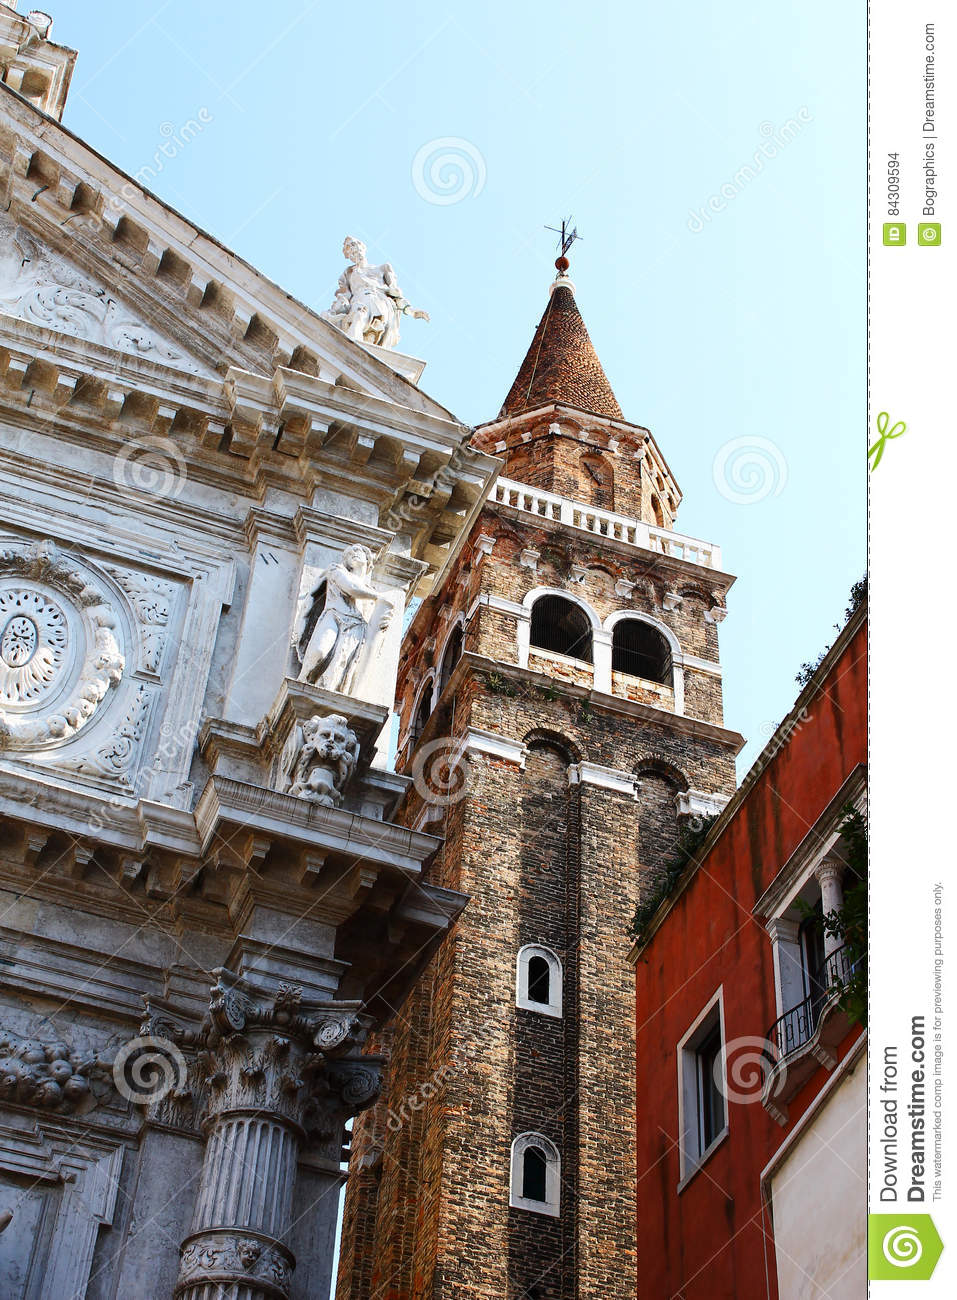 Download Very Old Buildings Crowded Inside Venice Stock Photo - Image of buildings, building: 84309594